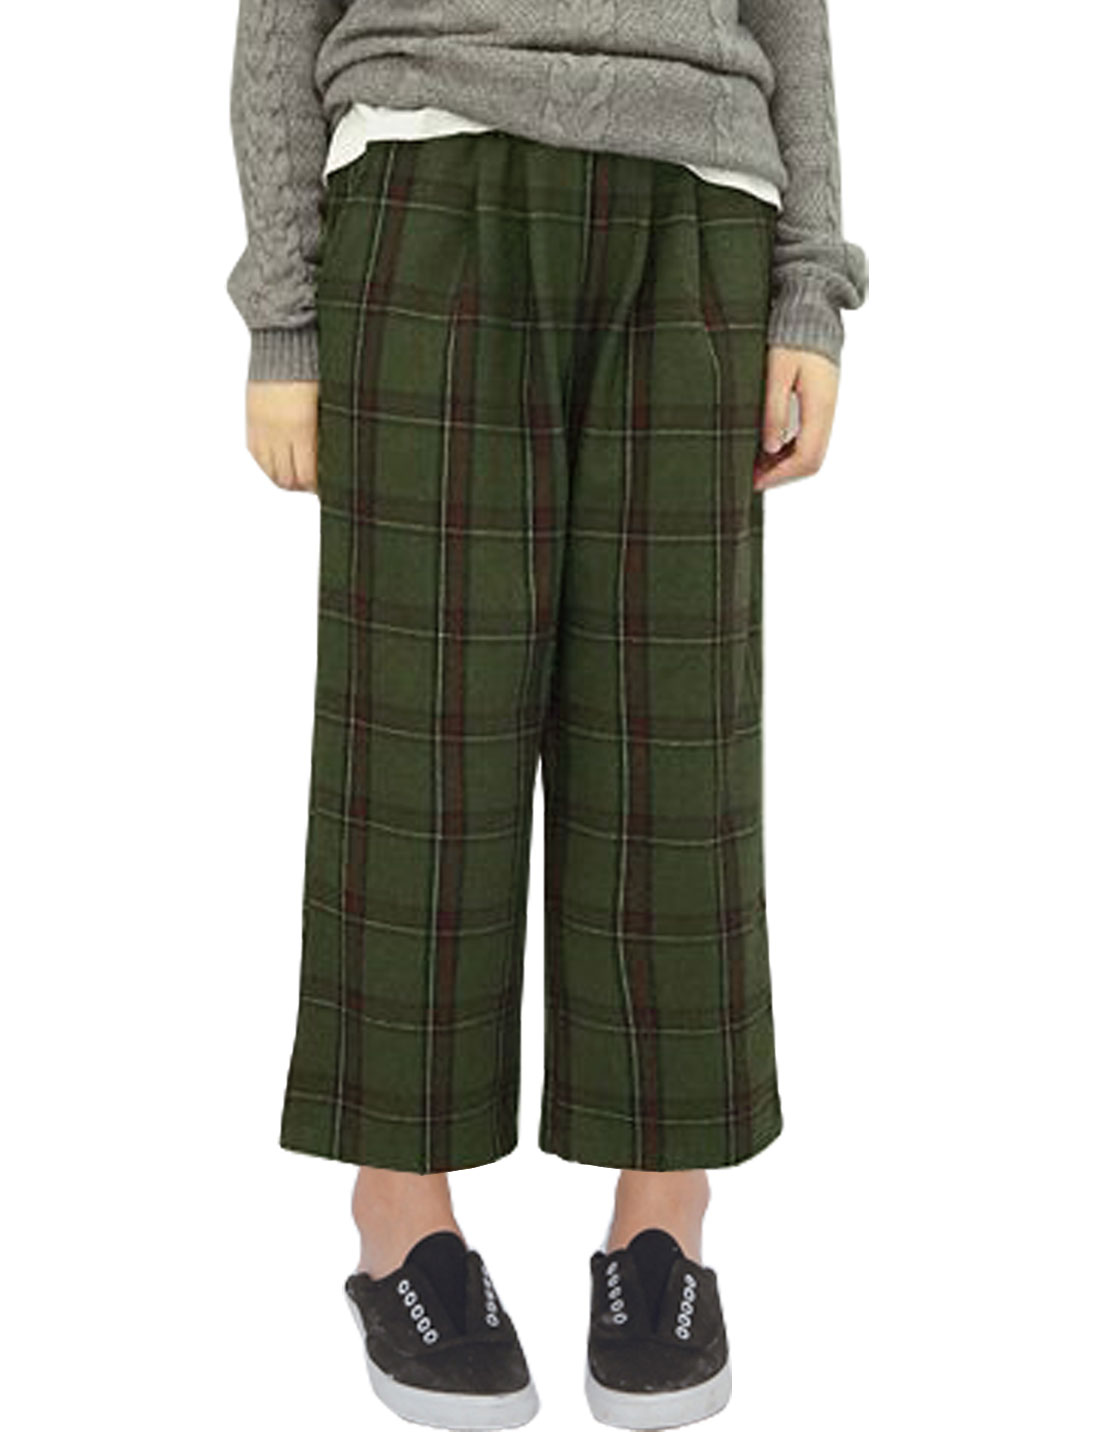 Women Elastic Waist Plaids Cropped Worsted Wide Leg Pants Green S